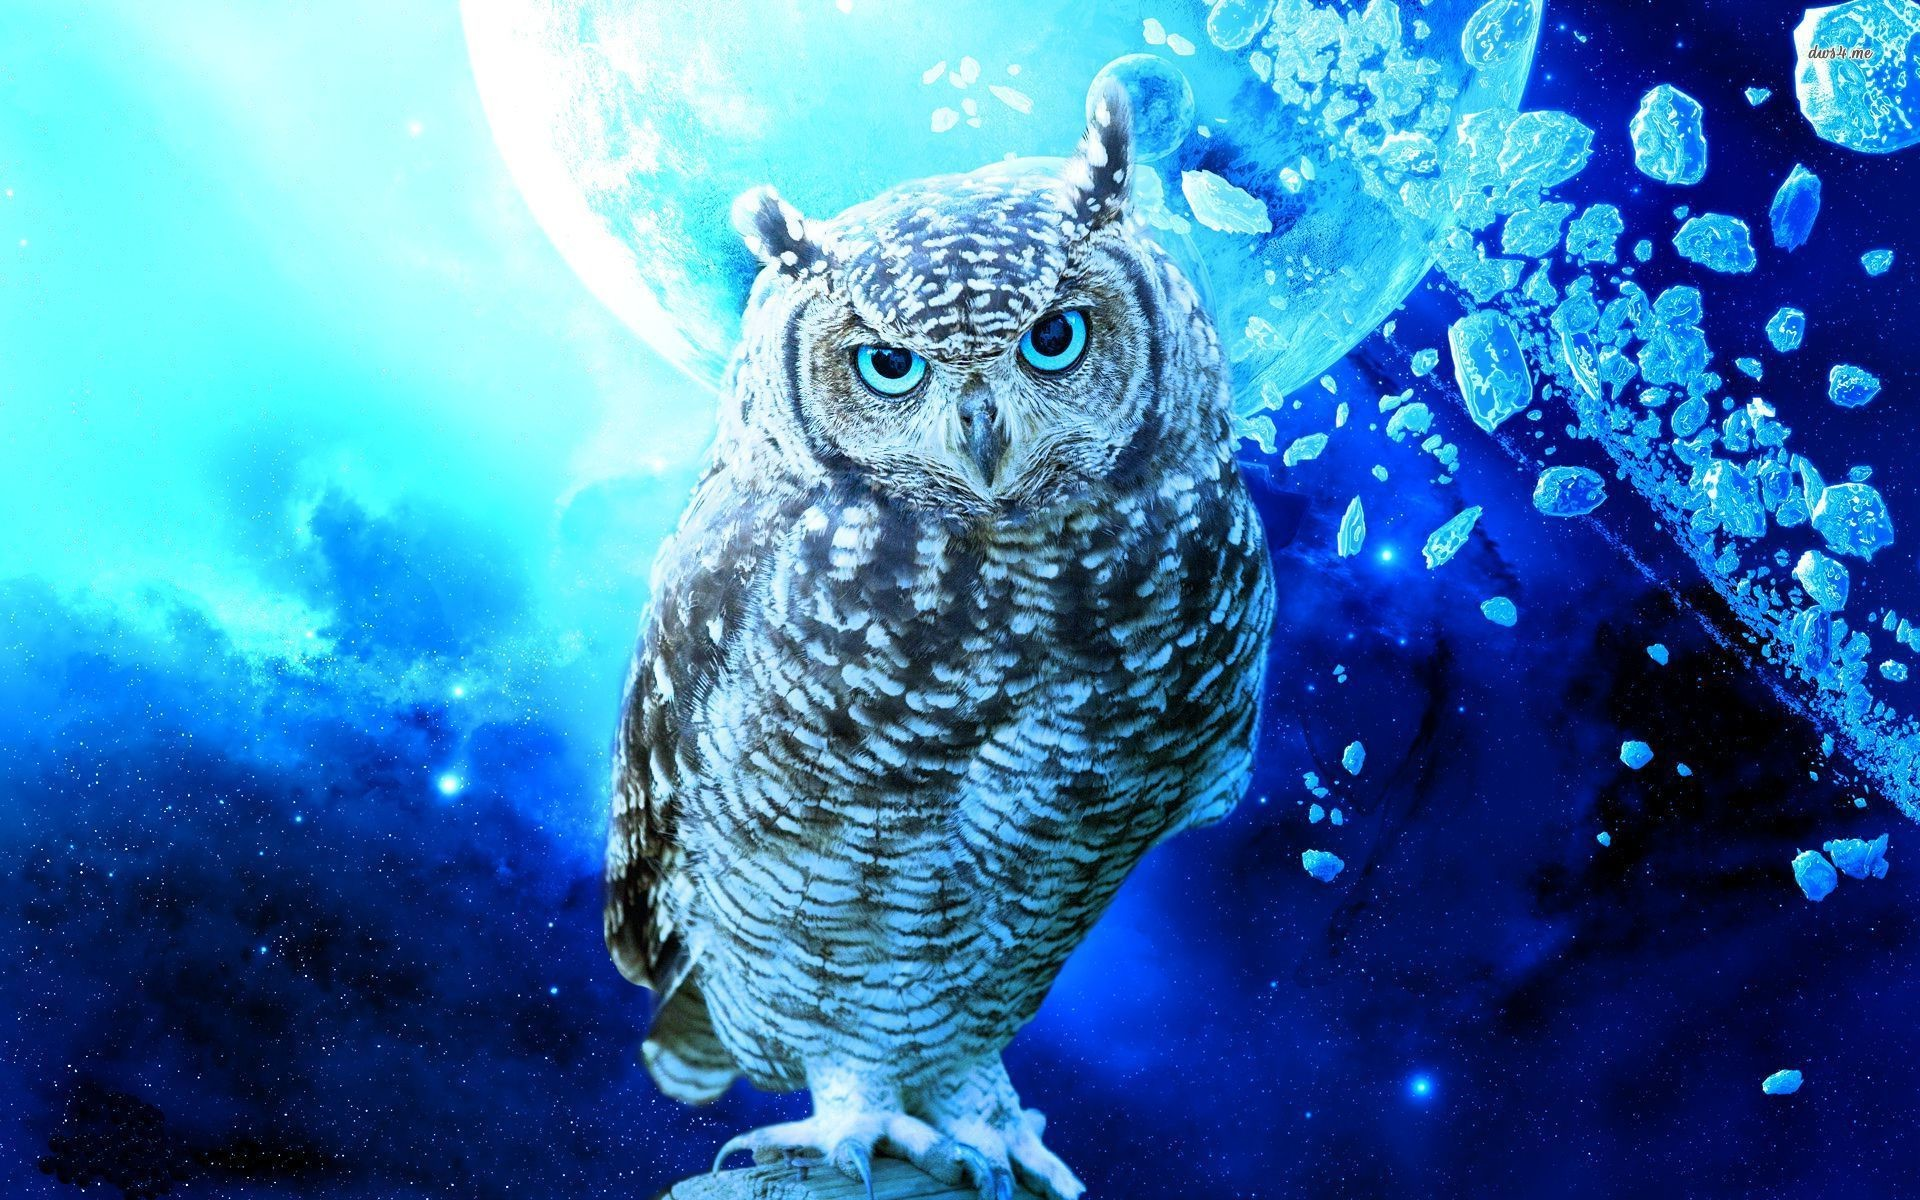 1920x1200 ... Cartoon Owl Wallpaper Wallpapersafari | The House ...